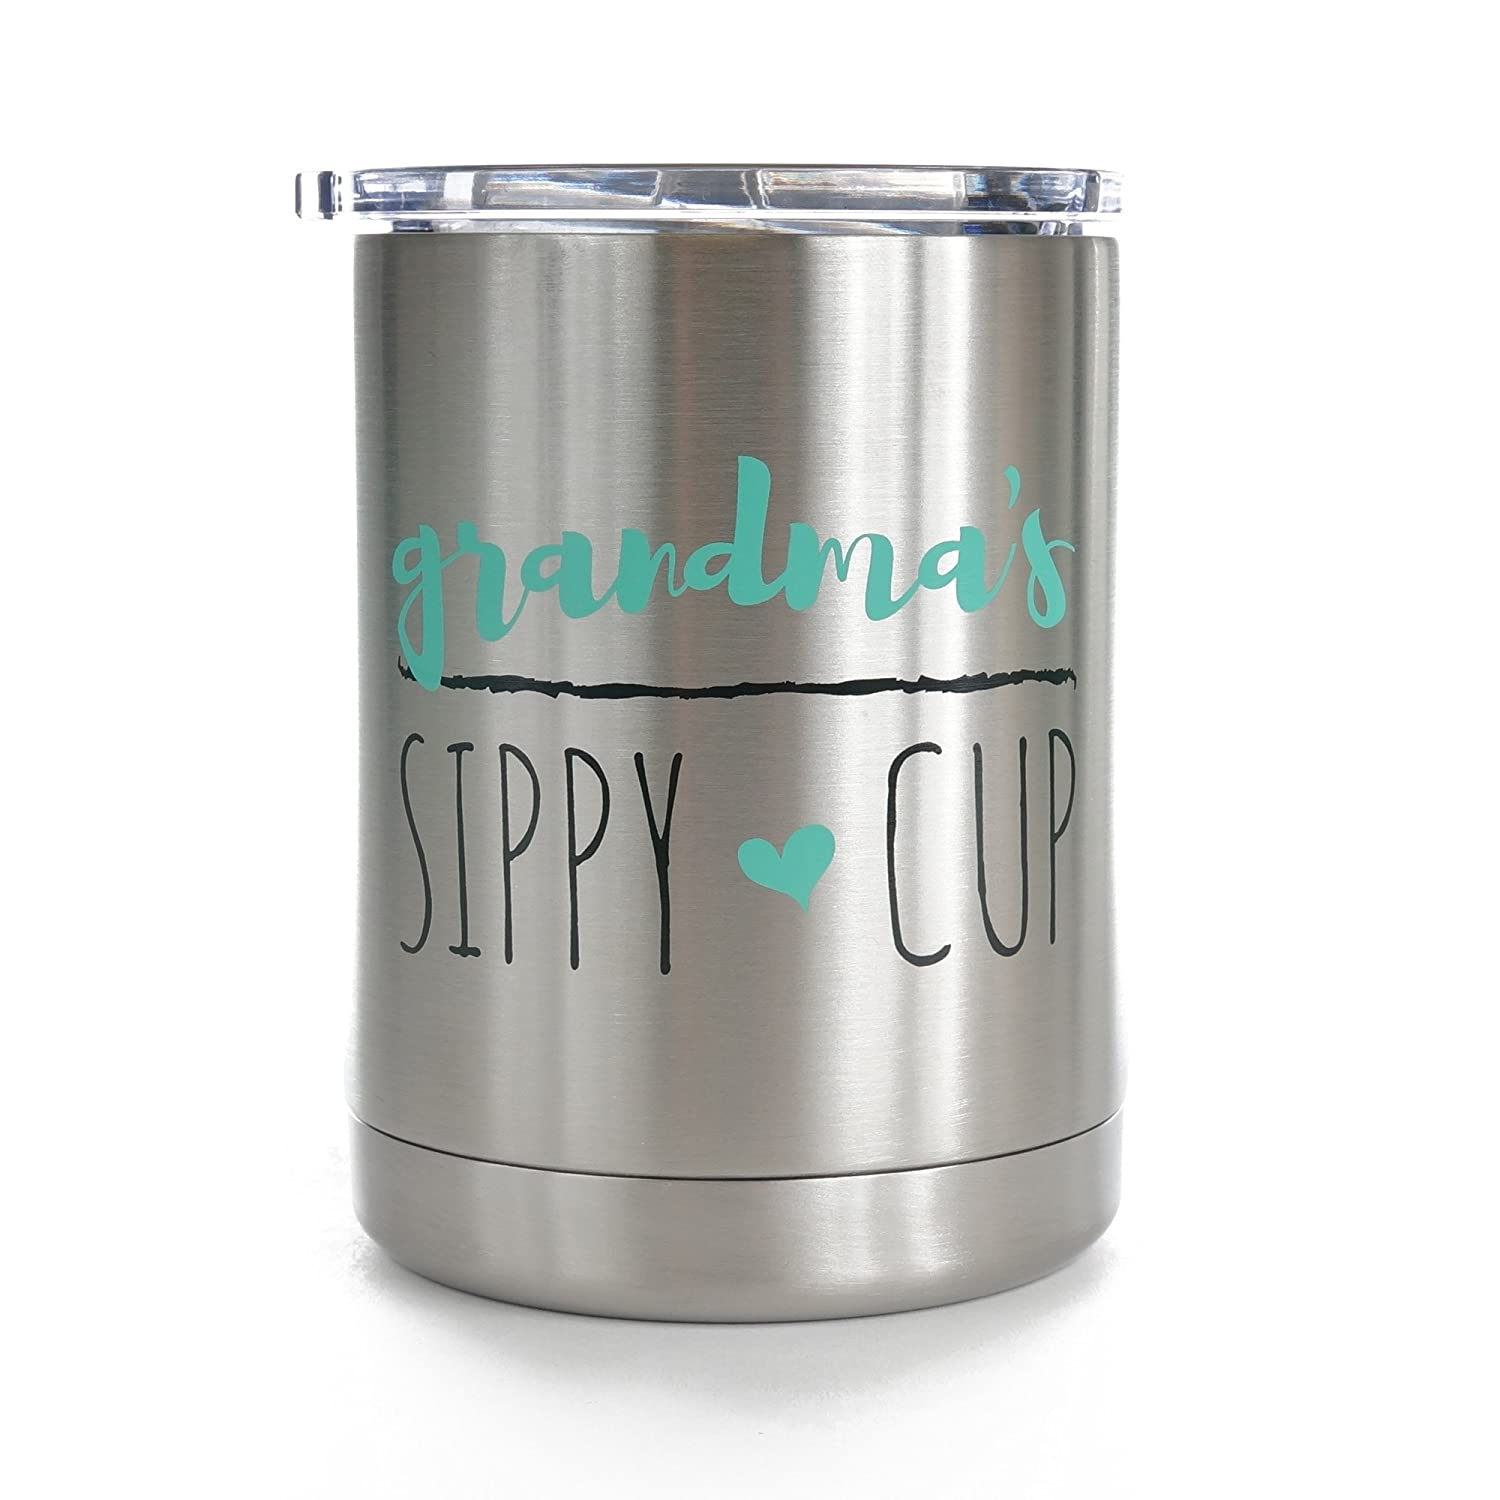 Grandma's Sippy Cup 10 oz. Stainless Steel Lowball - Proudly Screen Printed in the USA - Double Wall Vaccum Insulated